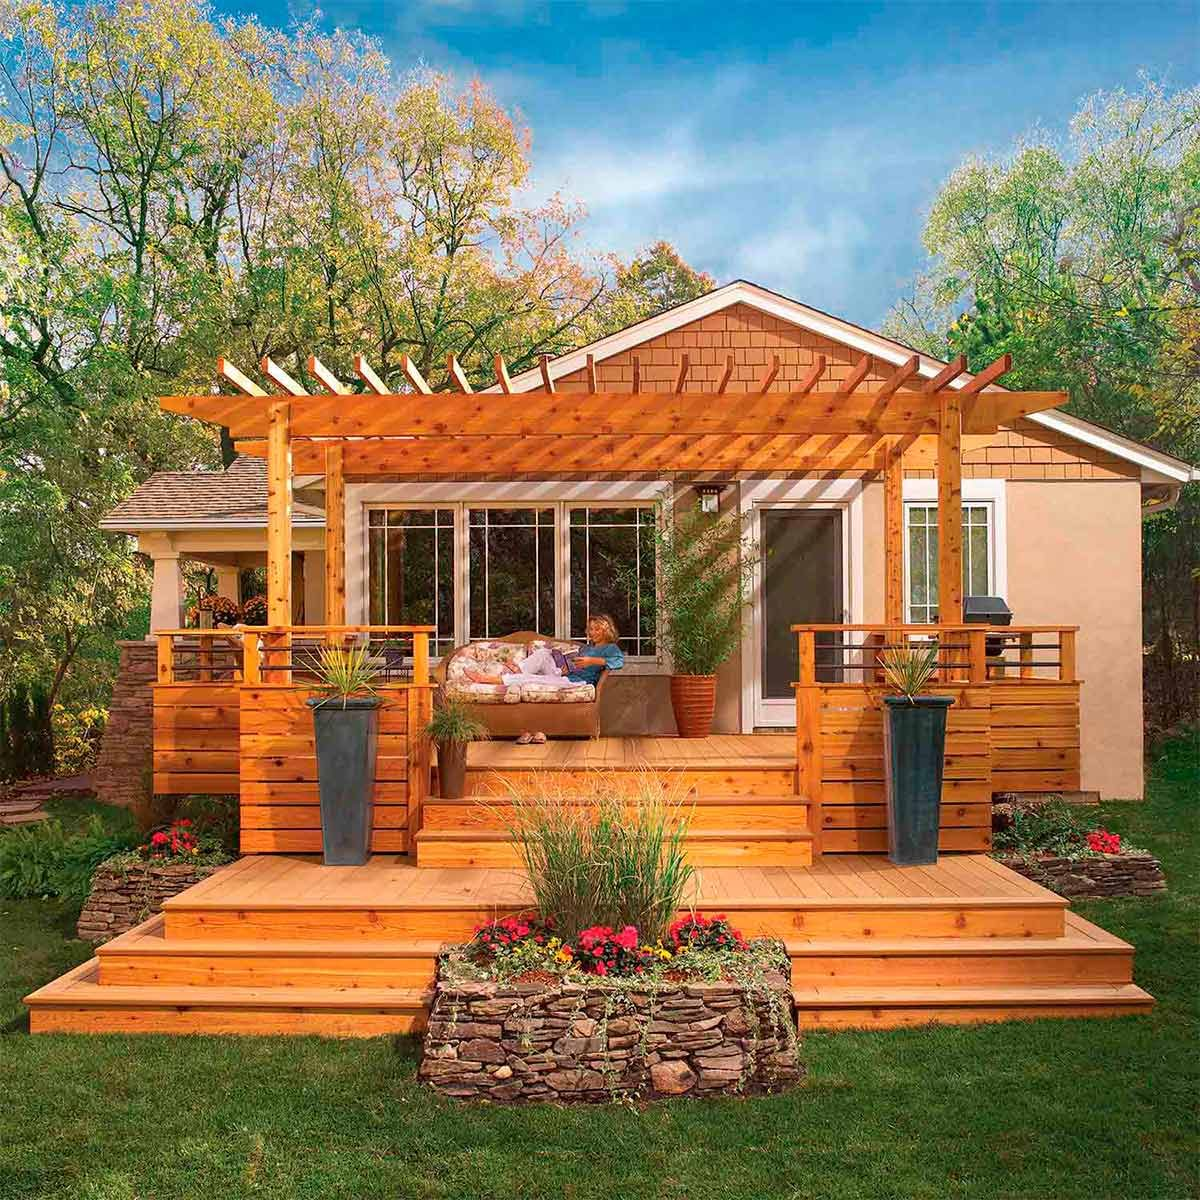 Backyard Transformation Before After: 13 Before And After Backyard Makeovers You Can Do In A